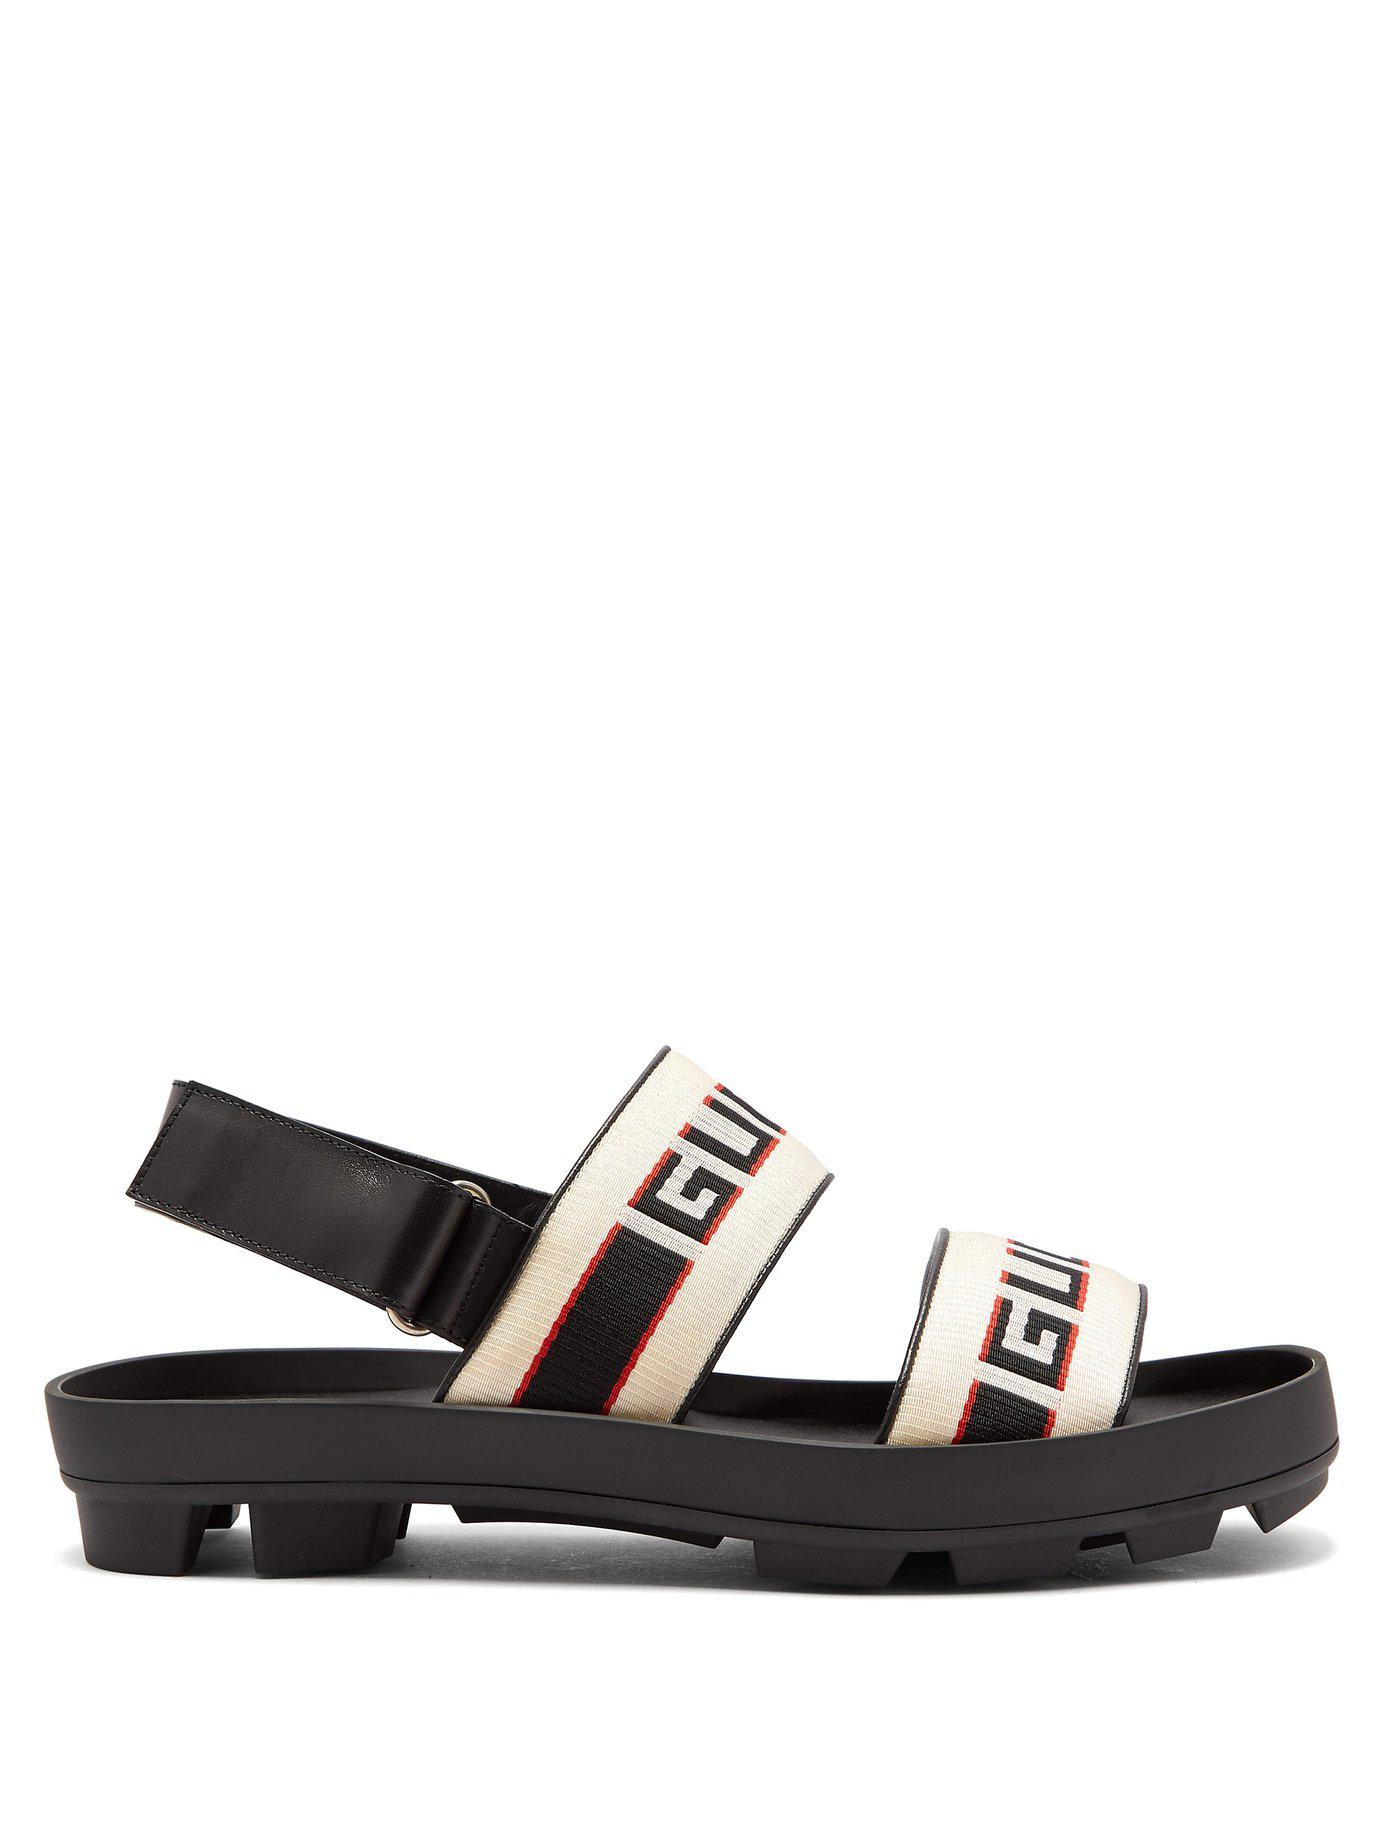 d7336bdc795 Gucci Stripe Strap Sandal in Black for Men - Lyst